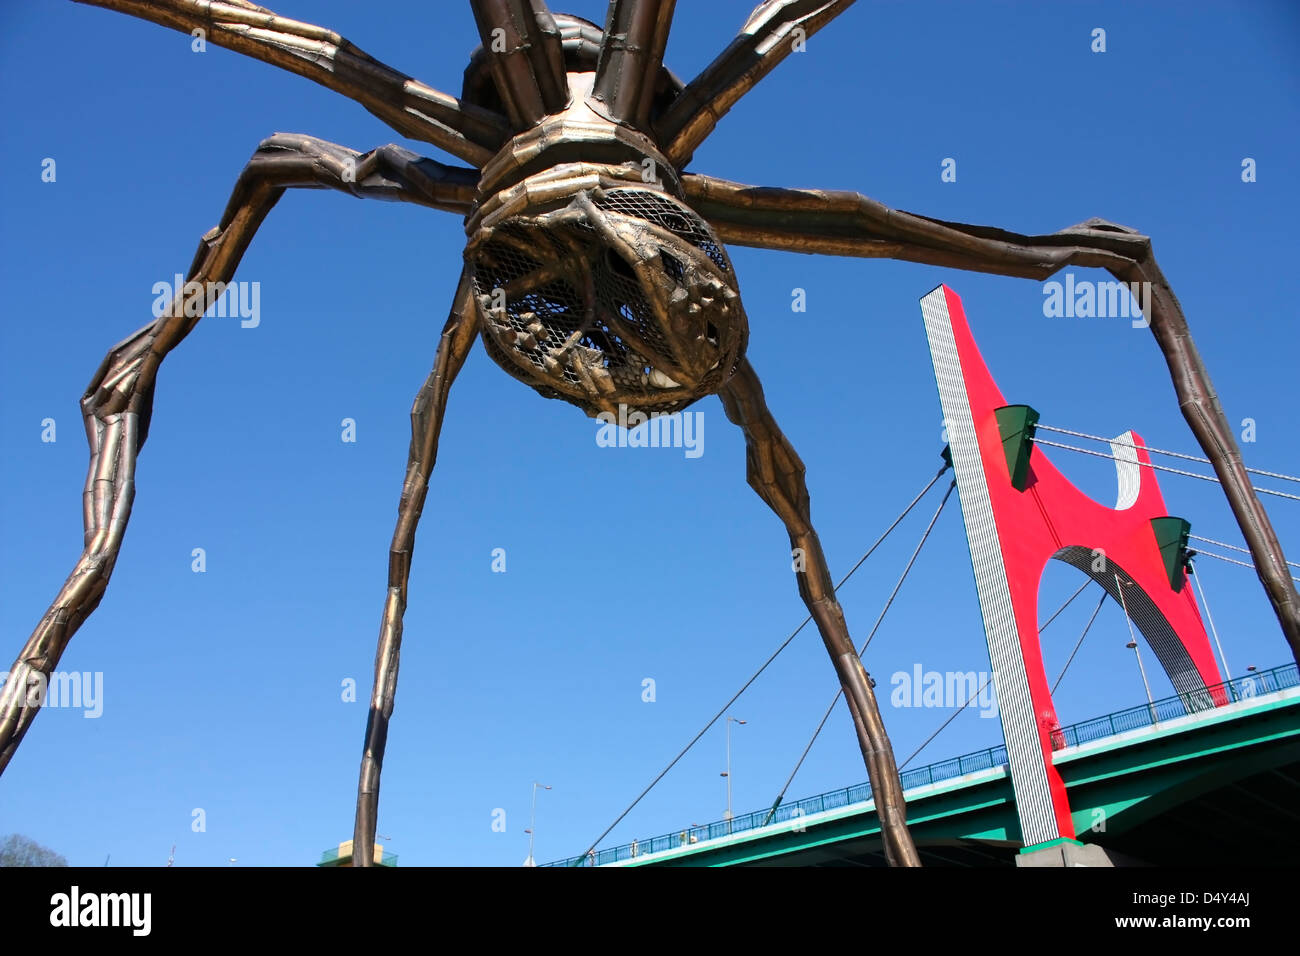 La Salve bridge, the gateway to the city of Bilbao, and The giant spider 'Mama'. the Guggenheim Museum, - Stock Image